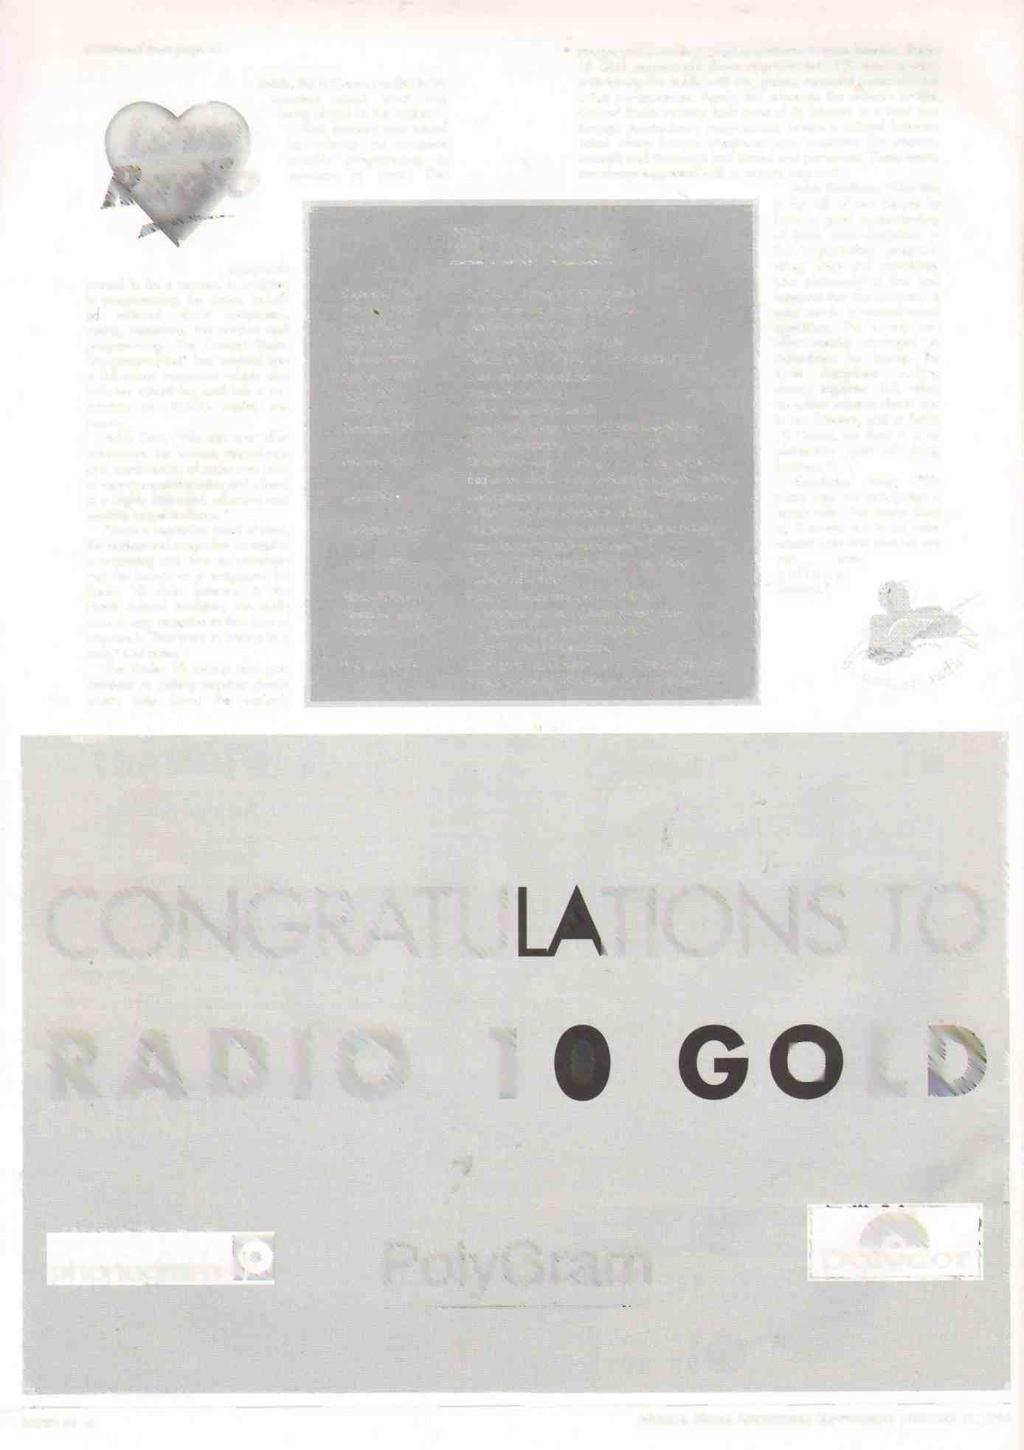 (continued from page 4) Love Radio approach proved to be a success. In addition to programming, the station included editorial about composers, events, musicians, the product and programming.